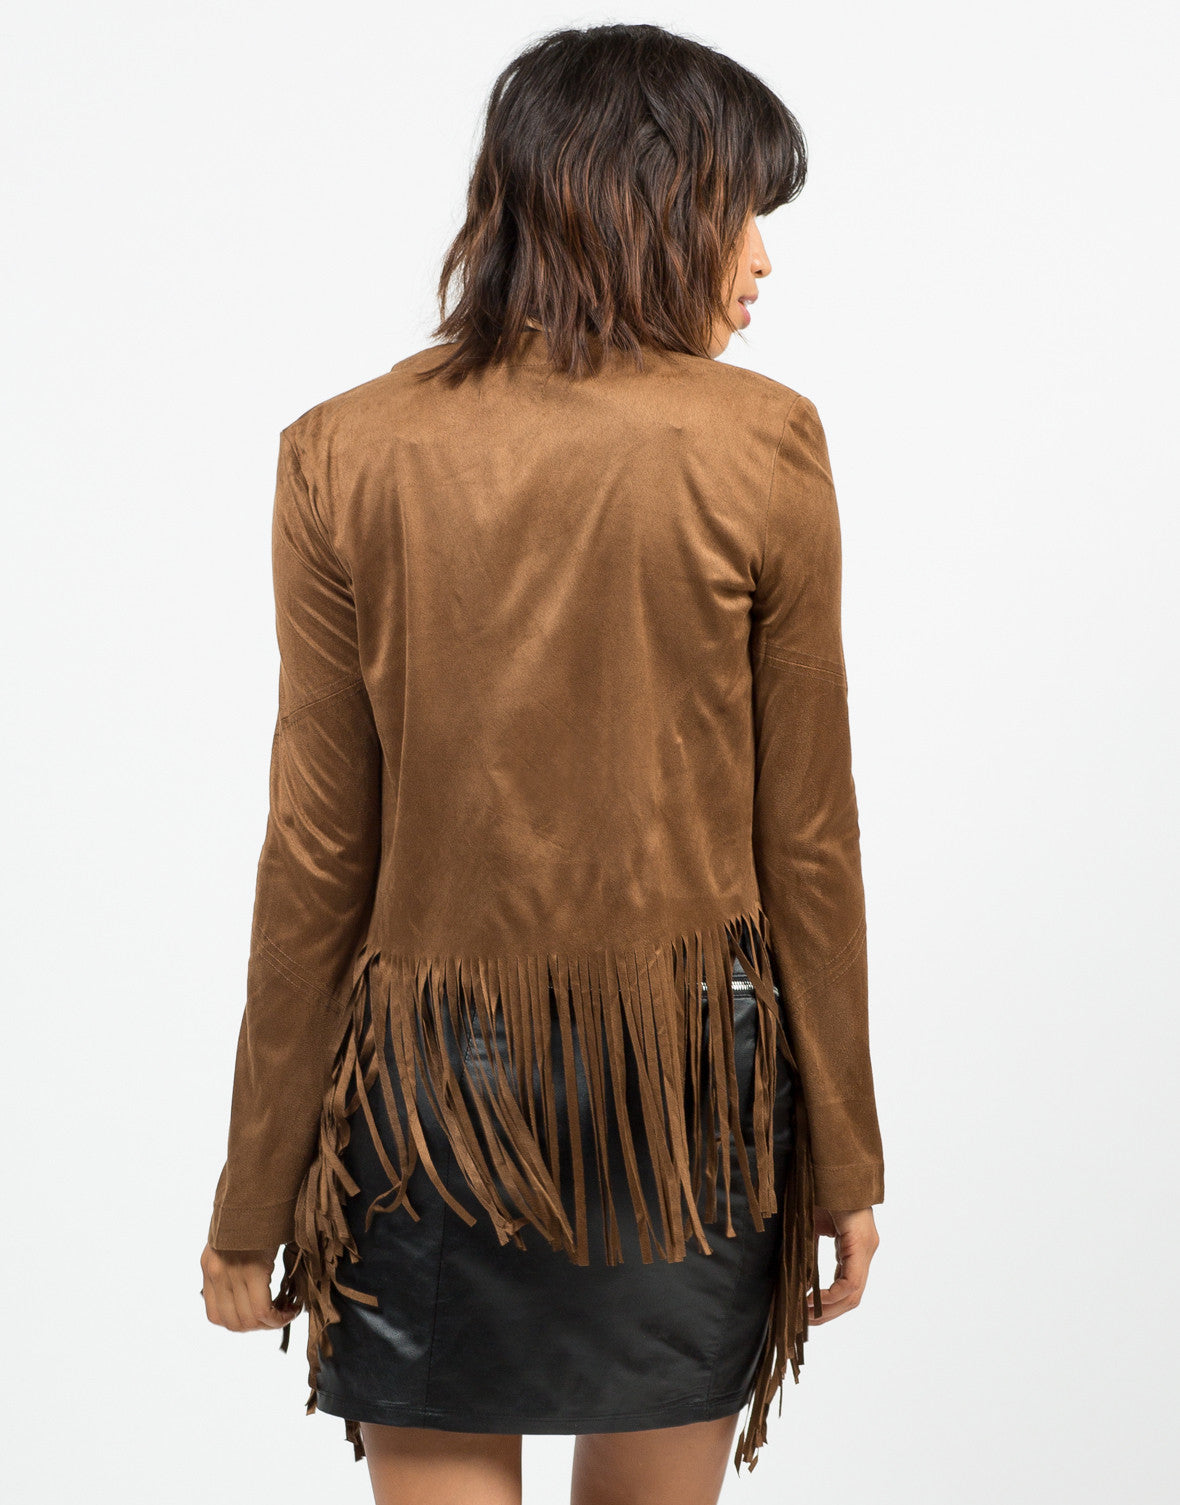 Back View of Suede Fringed Jacket